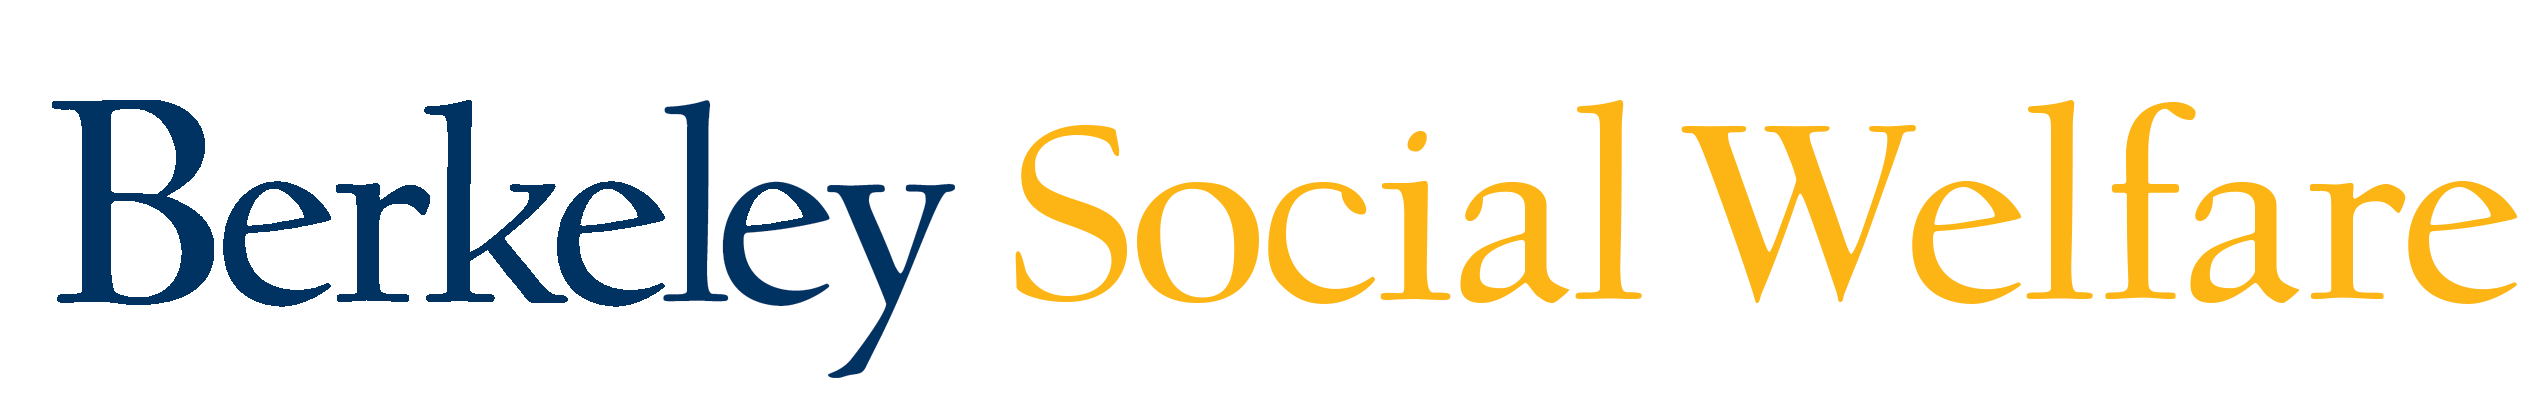 School of Social Welfare at University of California in Berkeley